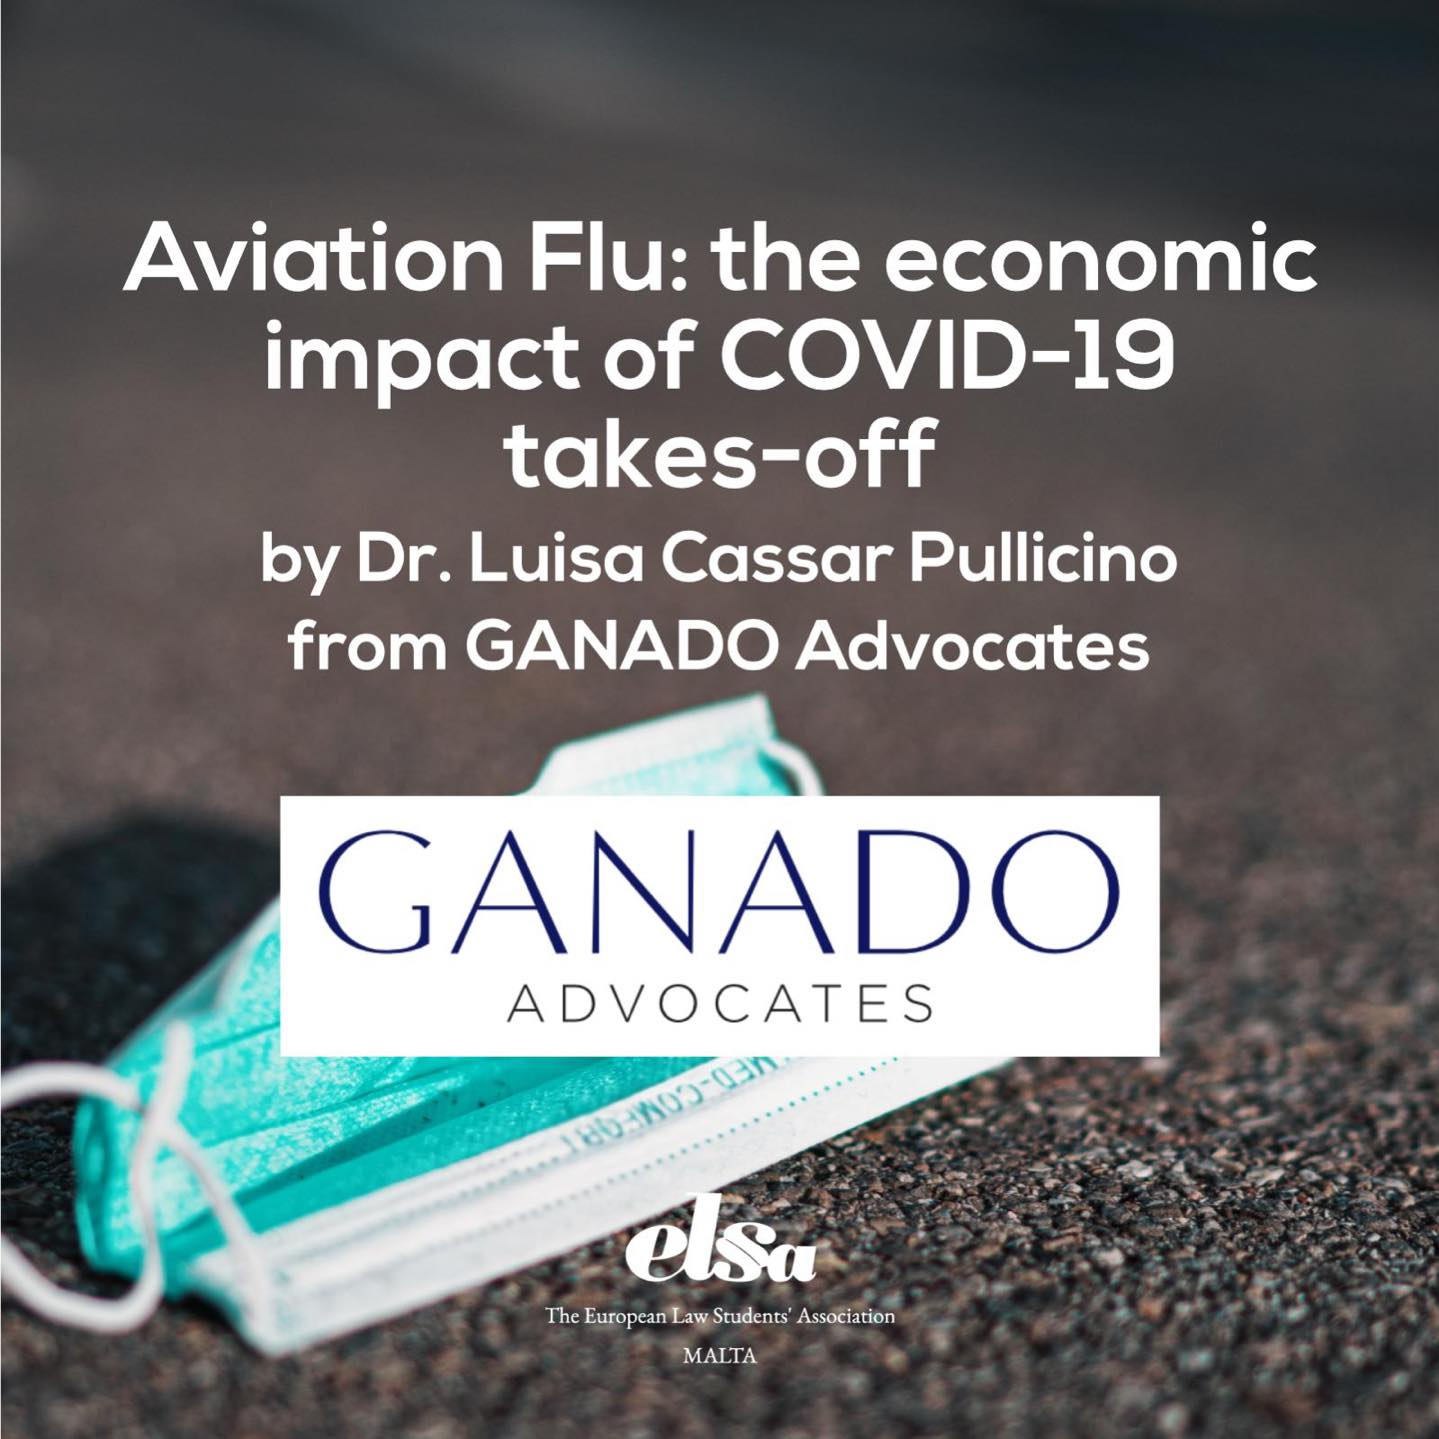 Aviation Flu: the economic impact of COVID-19 takes-off